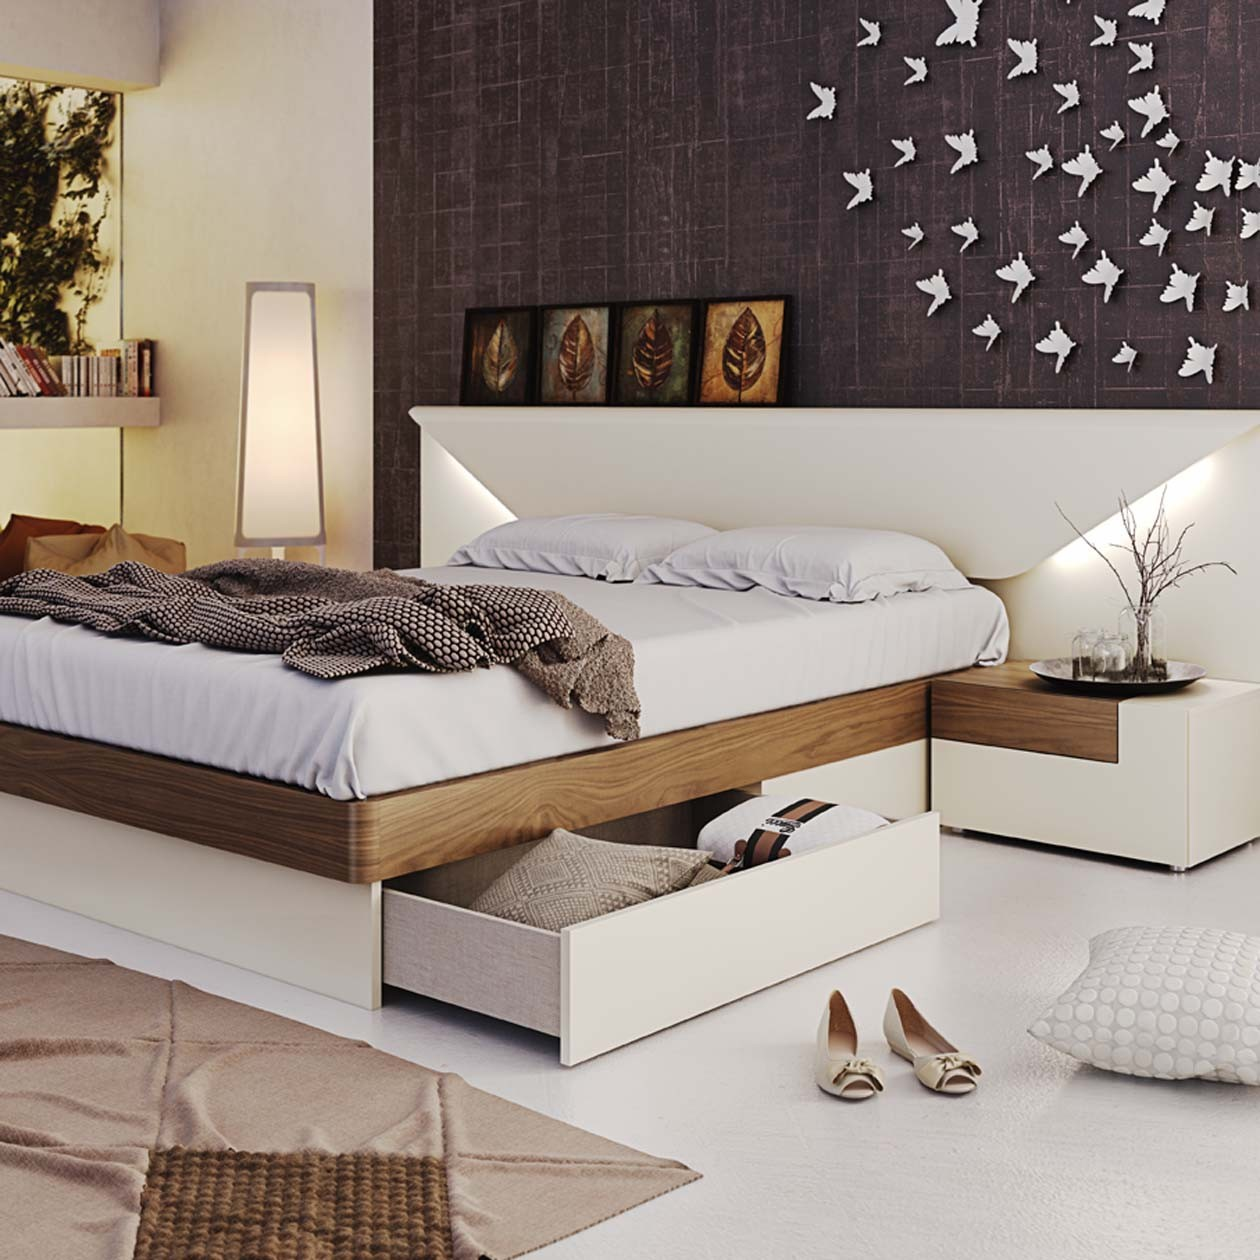 Elena Modern Italian Bedroom set - N Star Modern Furniture